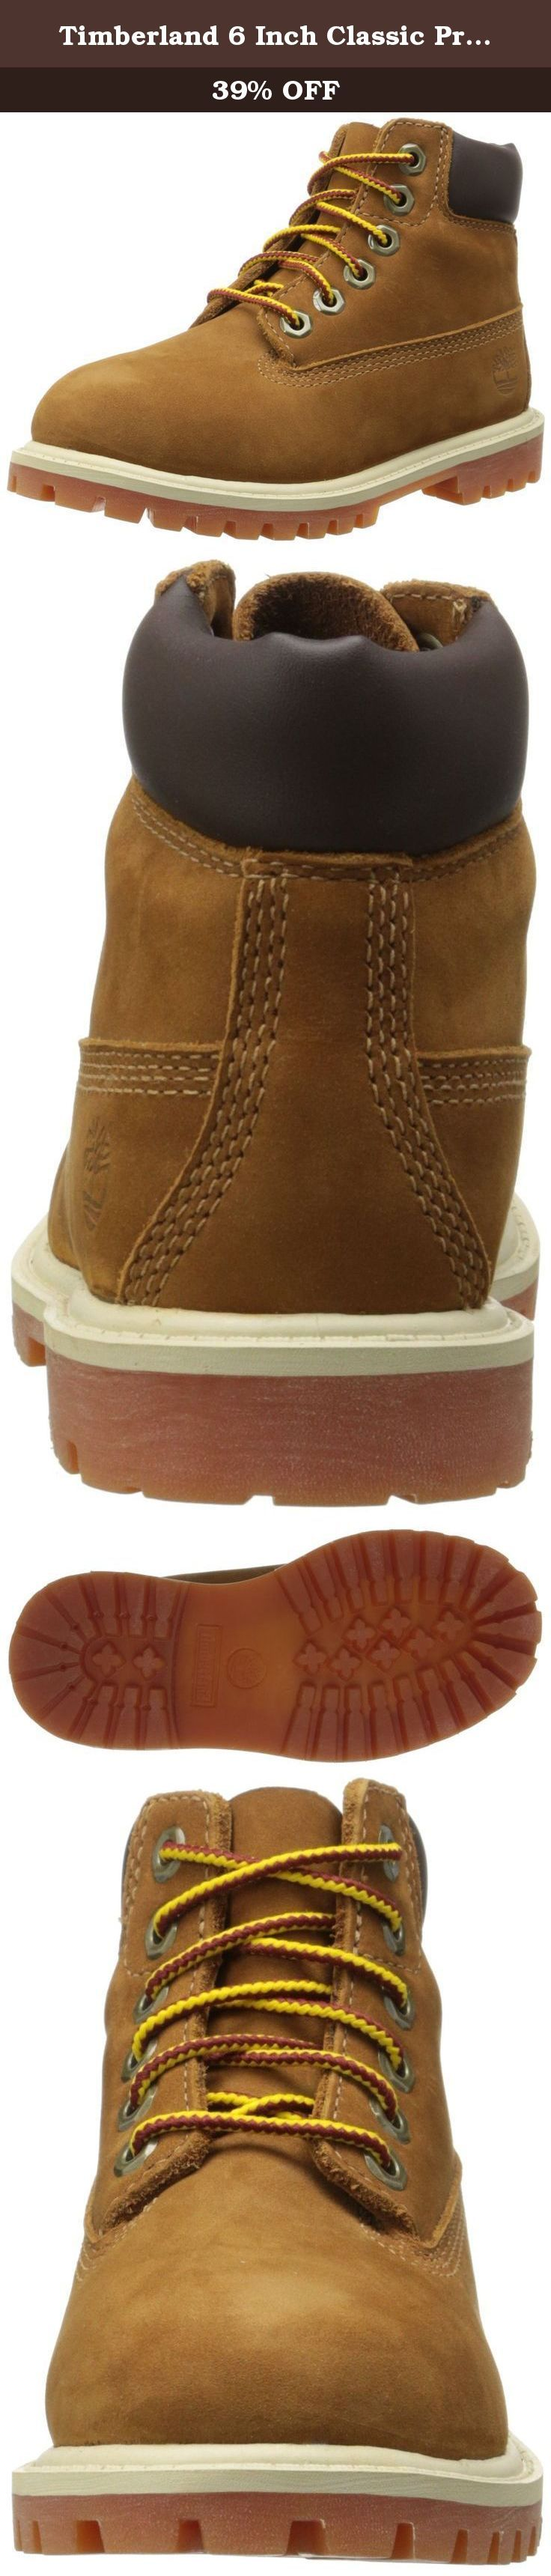 Timberland 6 Inch Classic Premium WP Waterproof Boot (Toddler/Little Kid/Big Kid),Rust Nubuck/Honey,8 M US Toddler. This sturdy light brown shoe brand Timberland is inspired by the original models of the brand and is now also available for the little ones!.